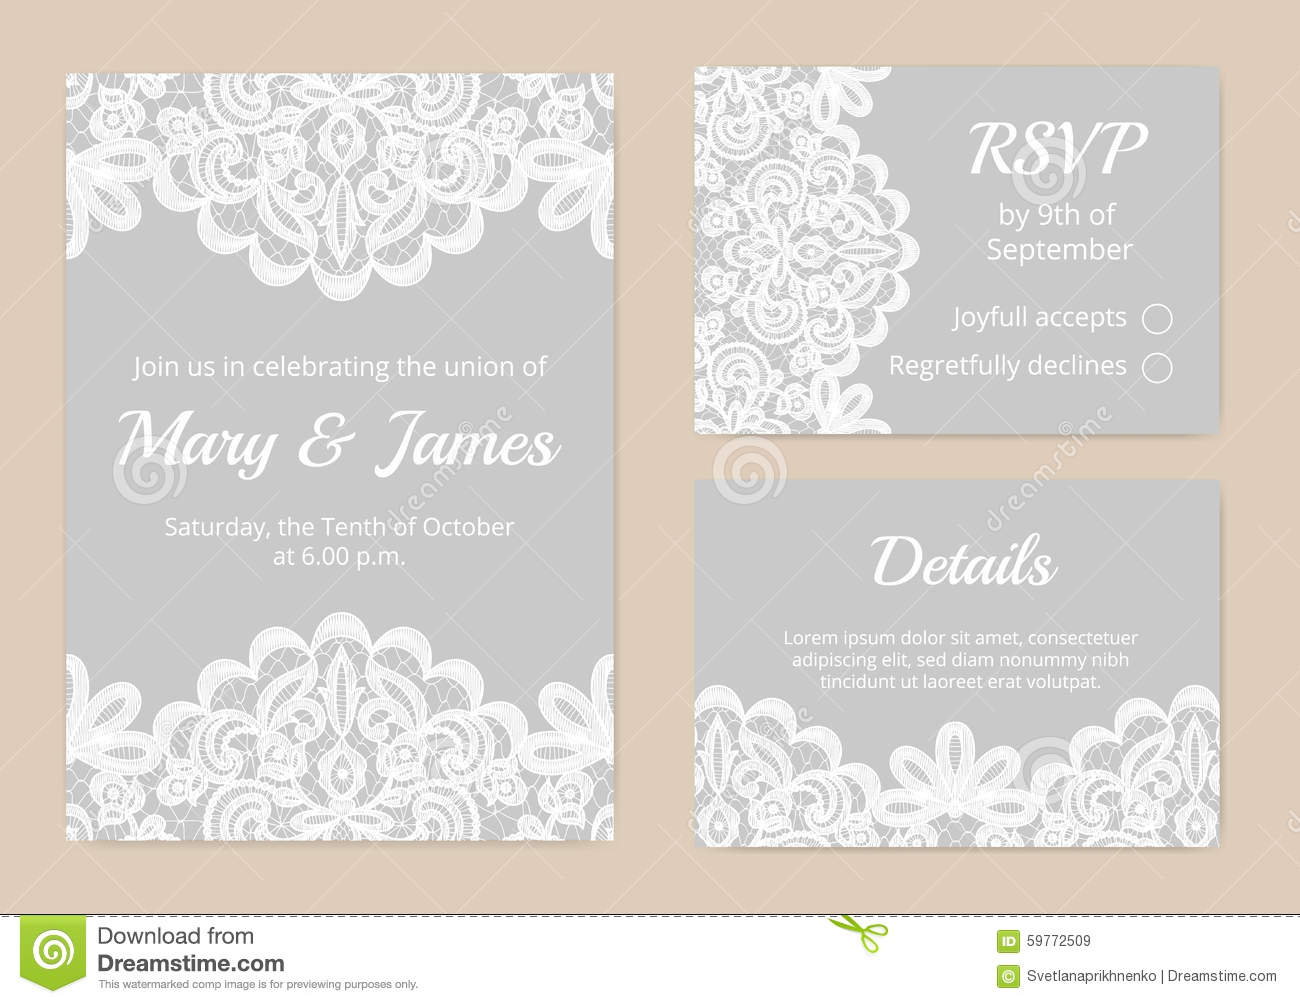 Lace cards for wedding stock vector. Illustration of event - 59772509